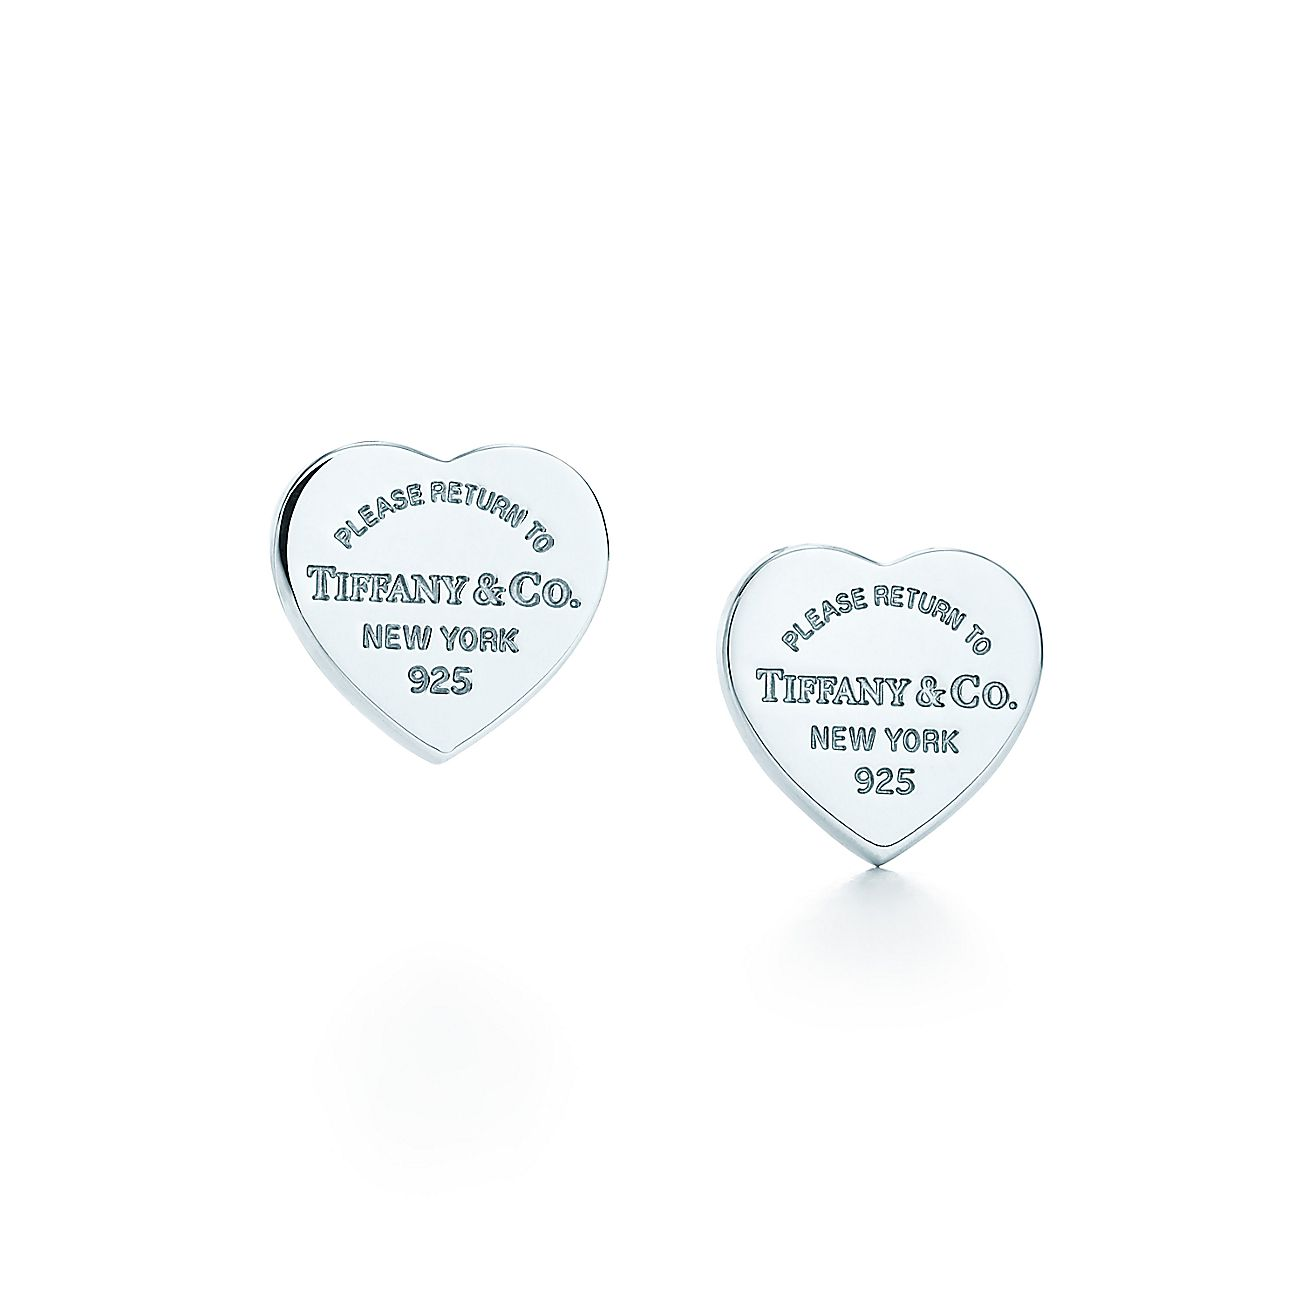 Jewelry Earrings Return To Tiffany Mini Heart Tag Earrings 23900564 Tiffany Earrings Heart